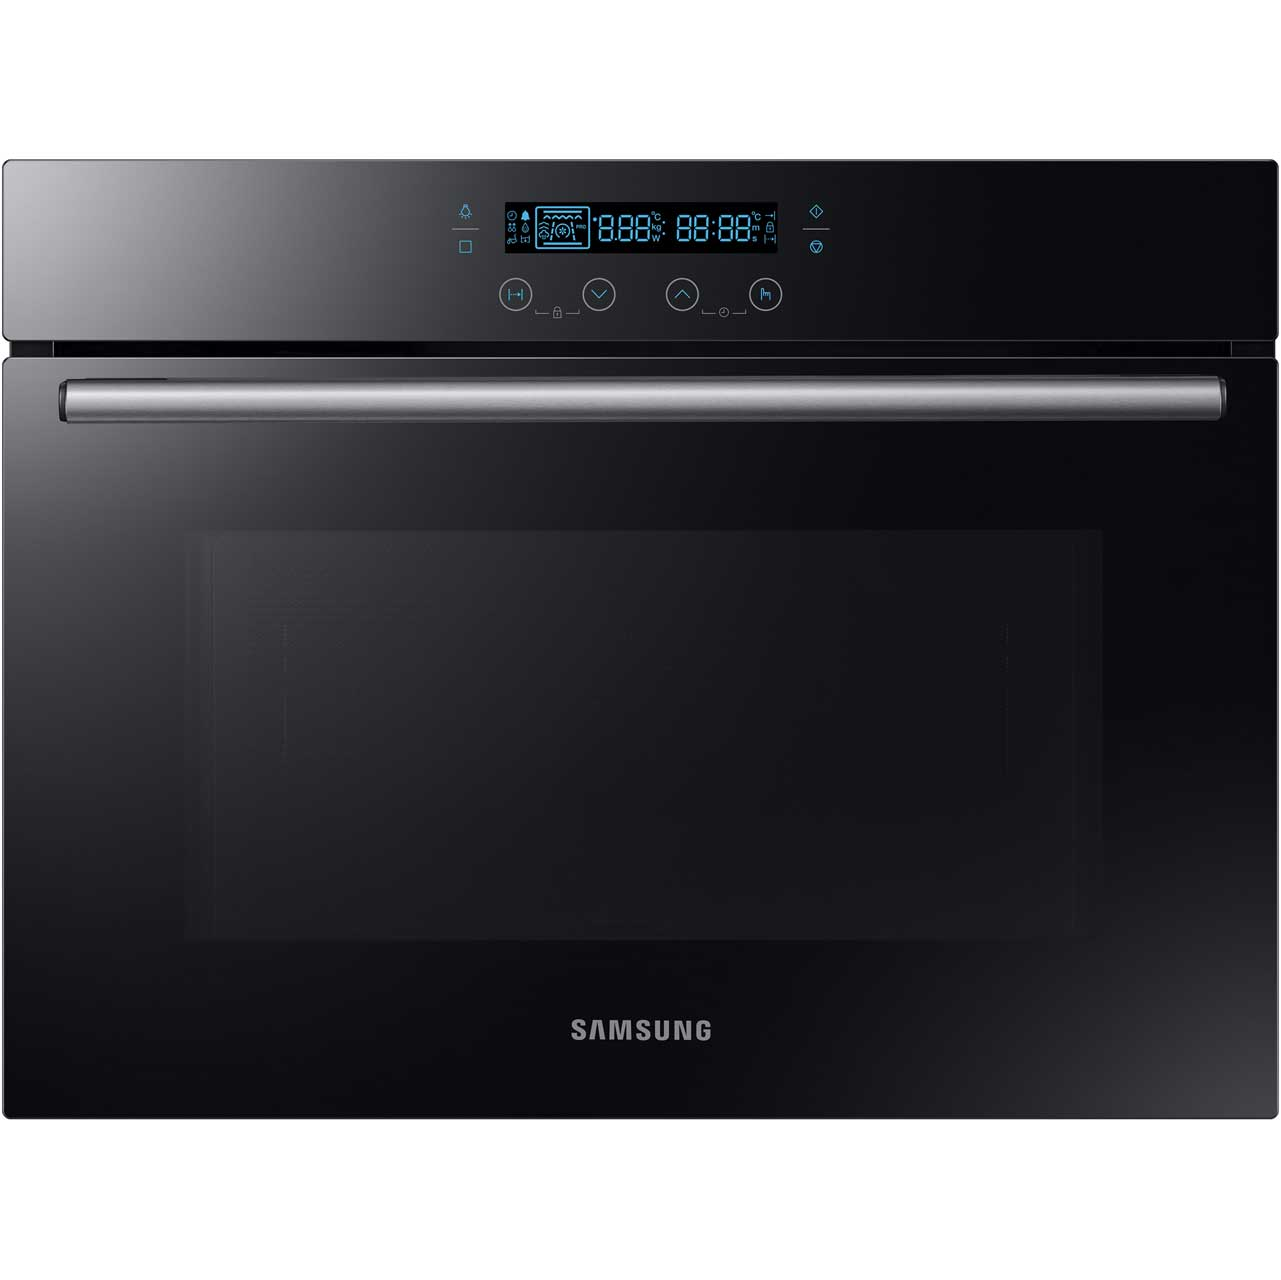 Integrated Microwave Buy Cheap Samsung Oven Compare Cookers And Ovens Prices